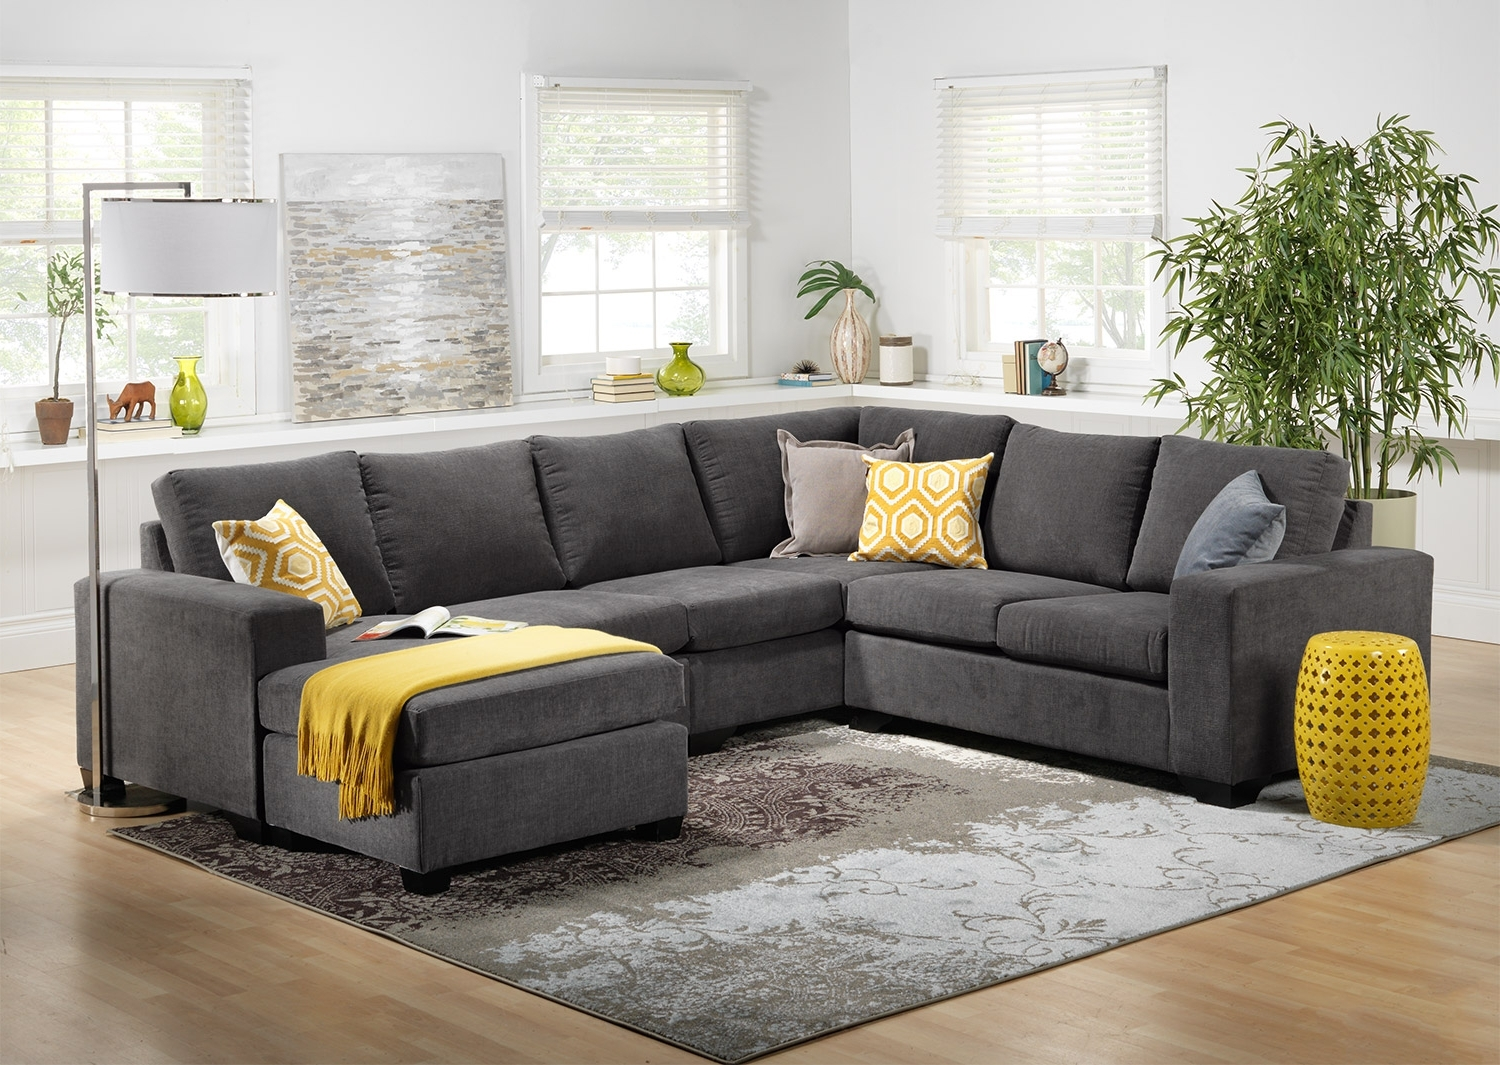 Ontario Canada Sectional Sofas With Regard To Most Up To Date Used Sectional Sofas For Sale Edmonton Best Home Furniture Ideas (View 4 of 20)